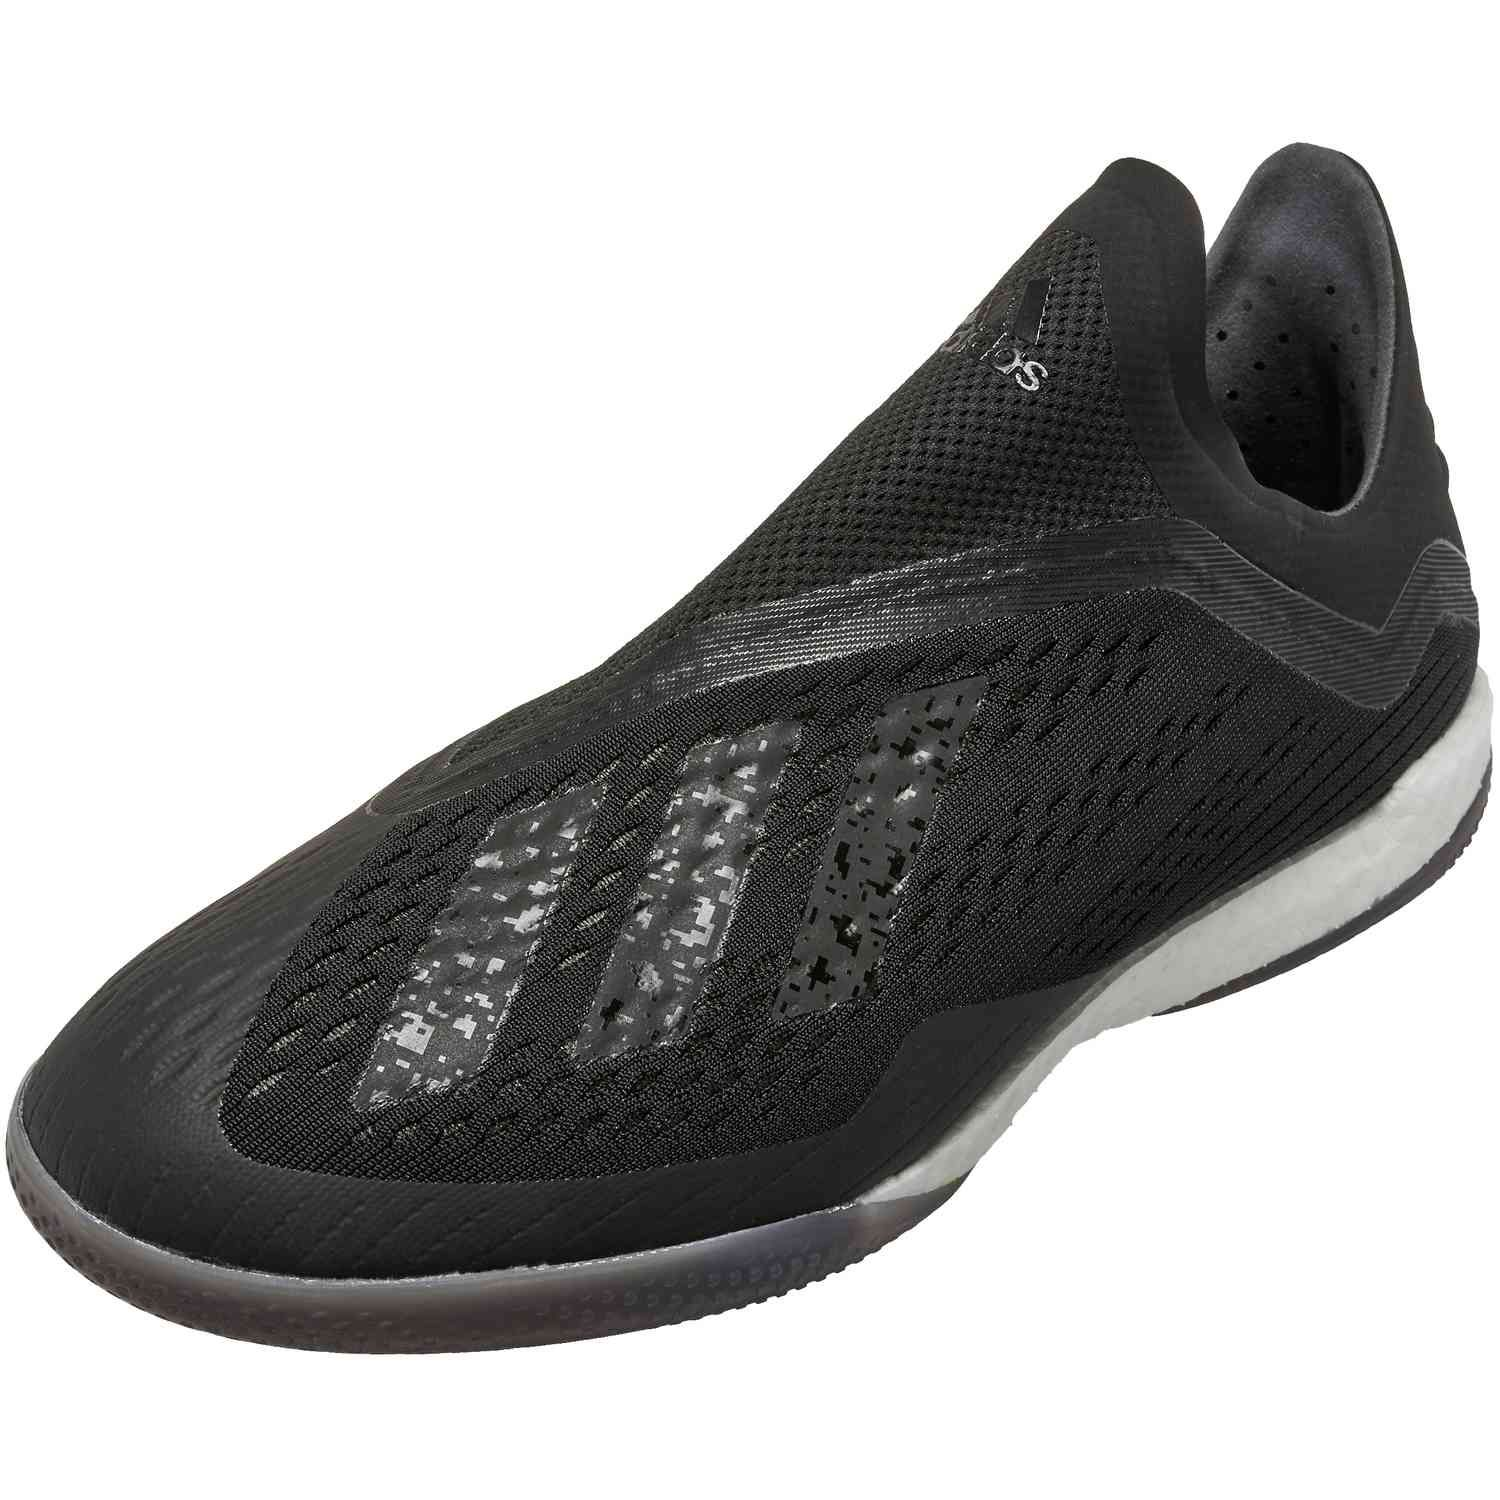 save off ed69b b3fb0 Shadow Mode adidas X Tango indoor soccer shoes. Get them at SoccerPro today!